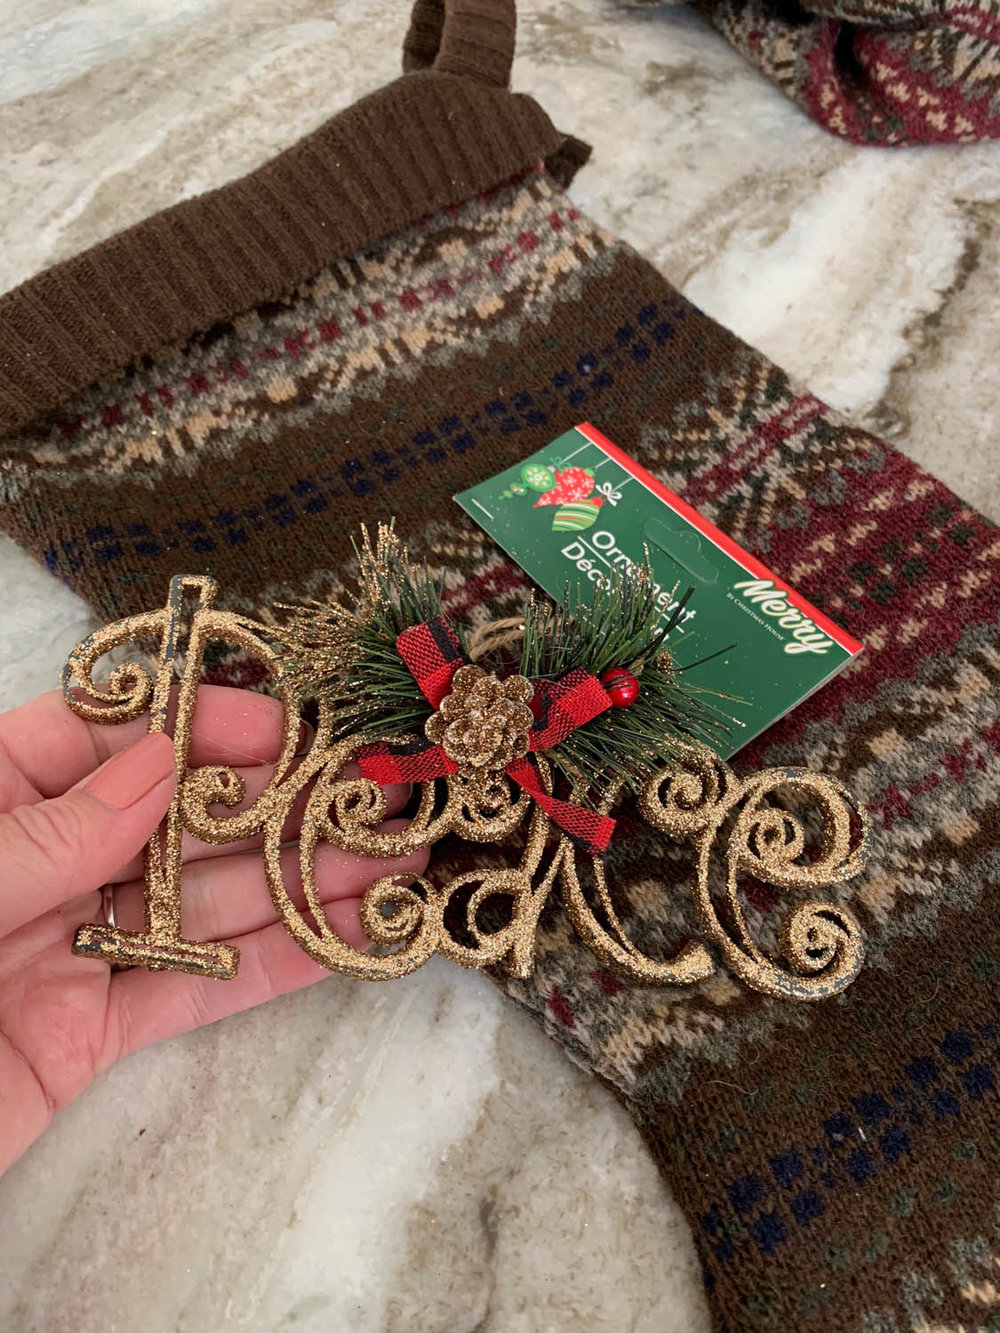 Gold glitter Peace ornament purchased from the Dollar Store